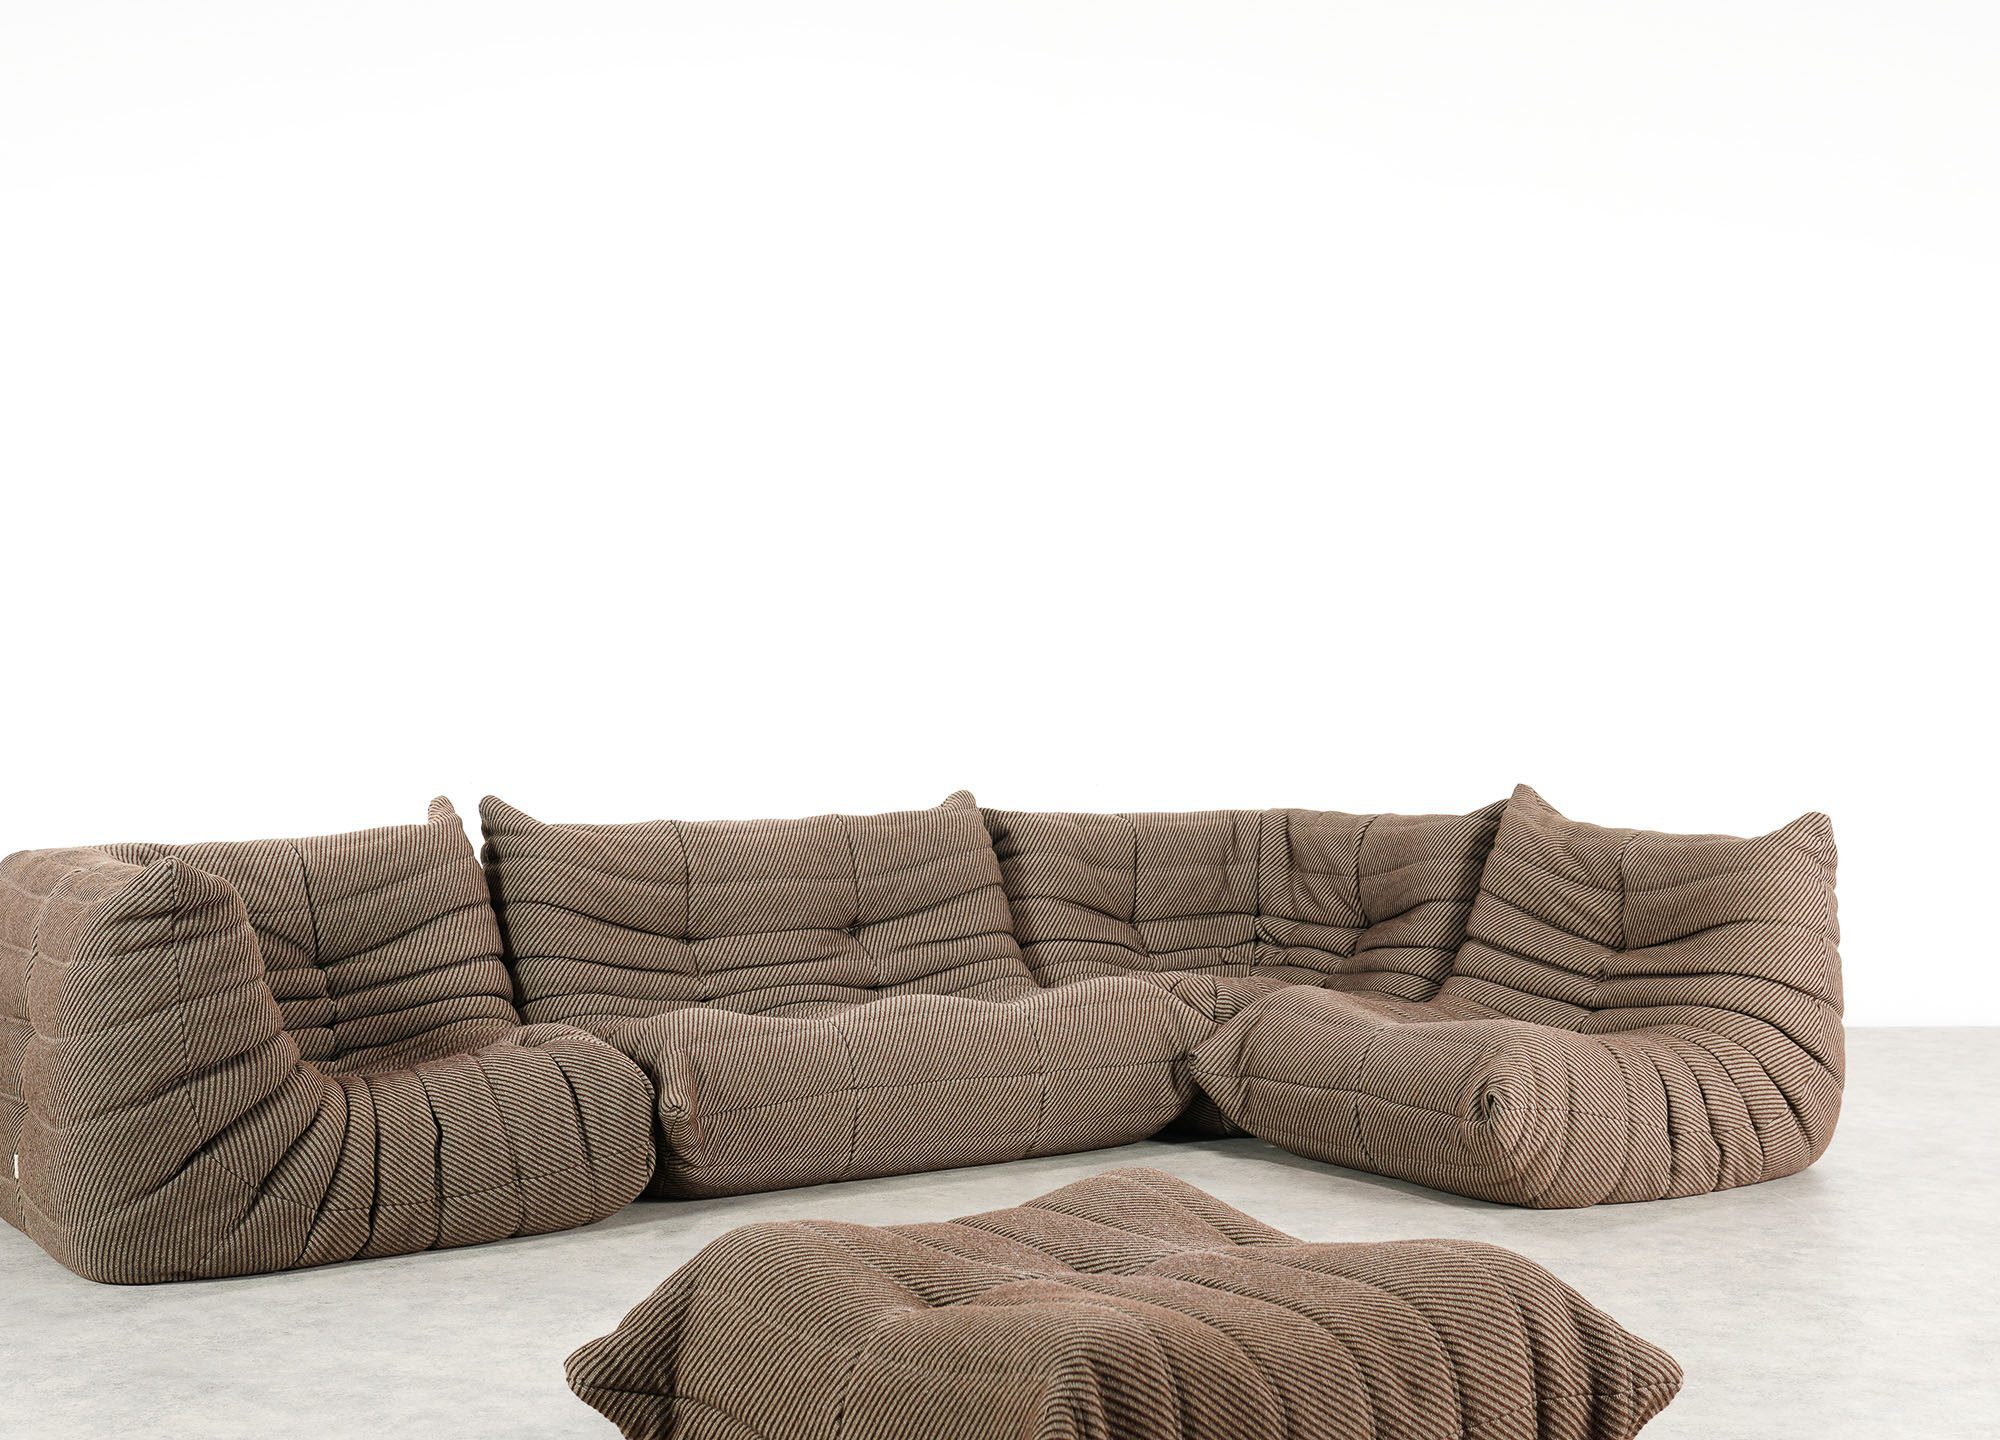 Full Size of Togo Style Sofa Uk Replica Buy Australia Alternatives Dimensions For Sale Melbourne Preis Ligne Roset Kaufen With Arms By Michel Ducaroy Mit Relaxfunktion 3 Sofa Togo Sofa